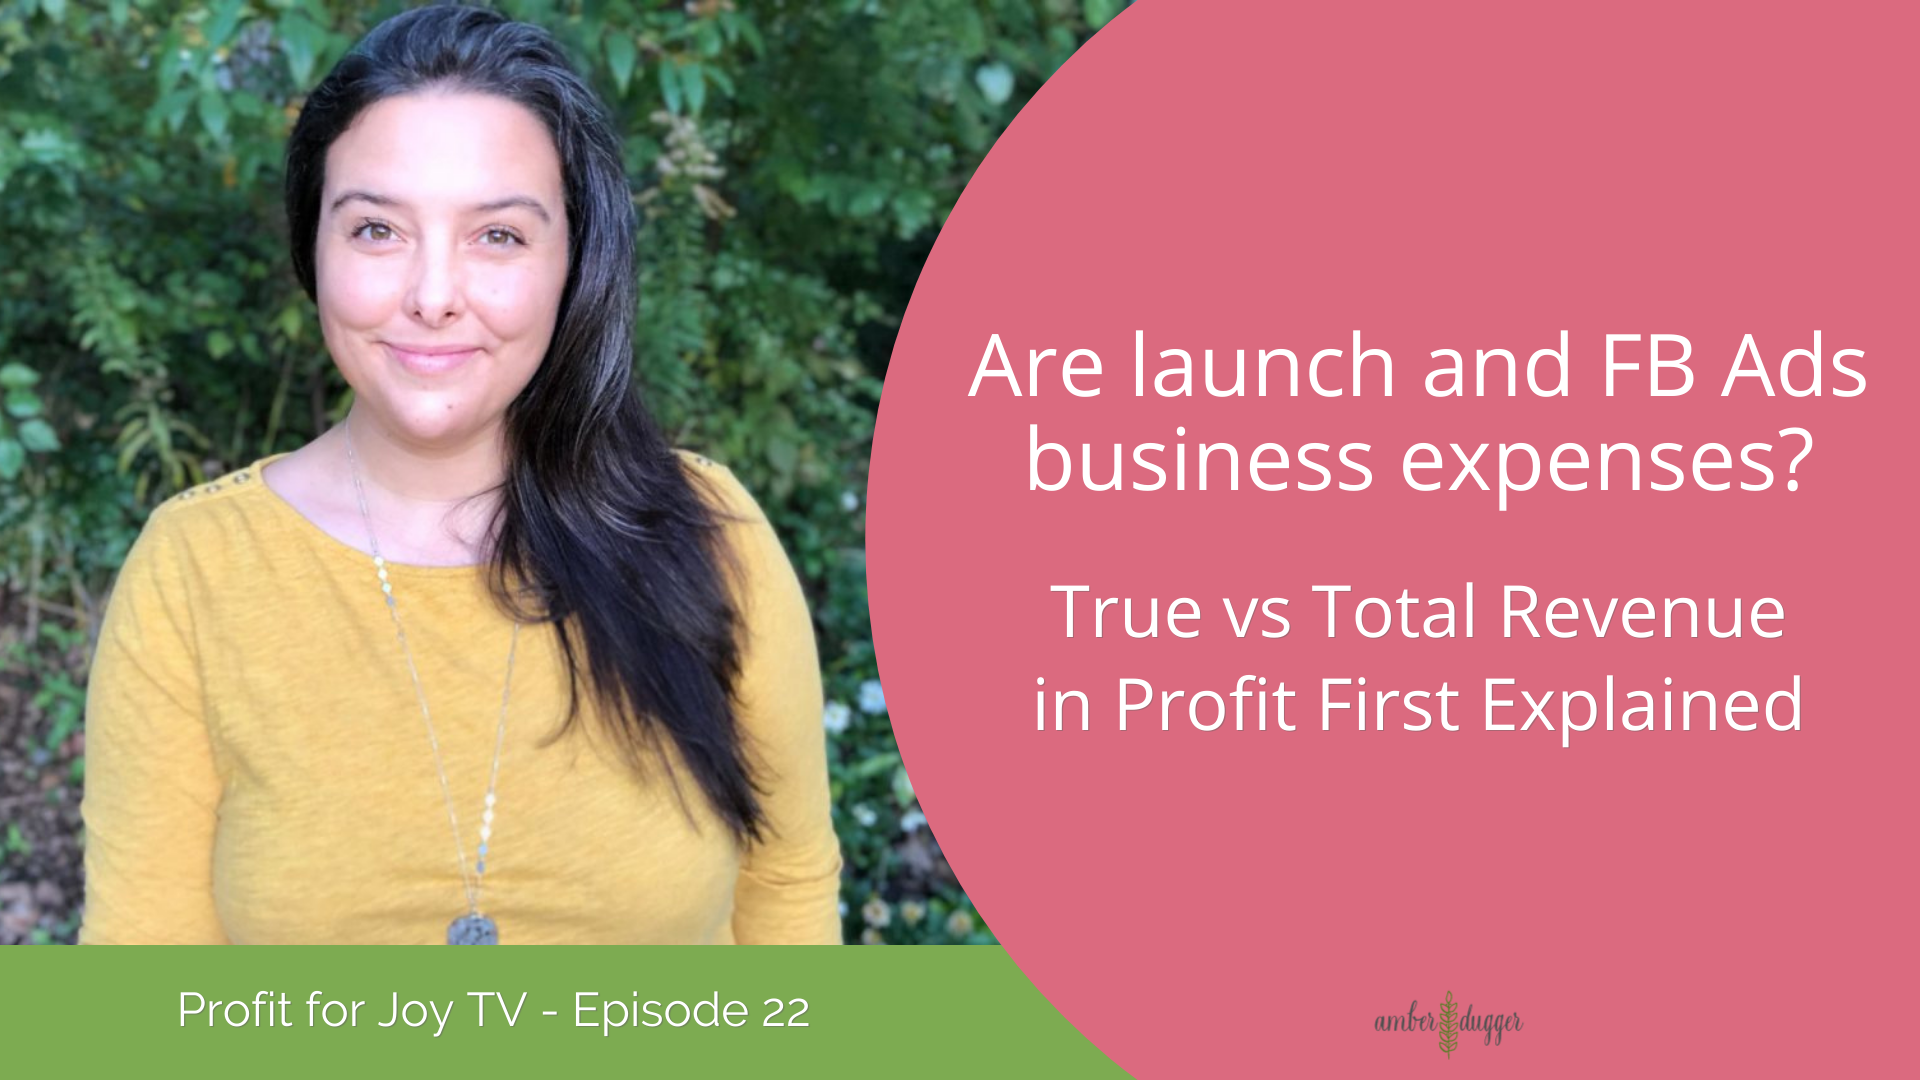 Are launch and FB Ads business expenses? True vs Total Revenue in Profit First Explained